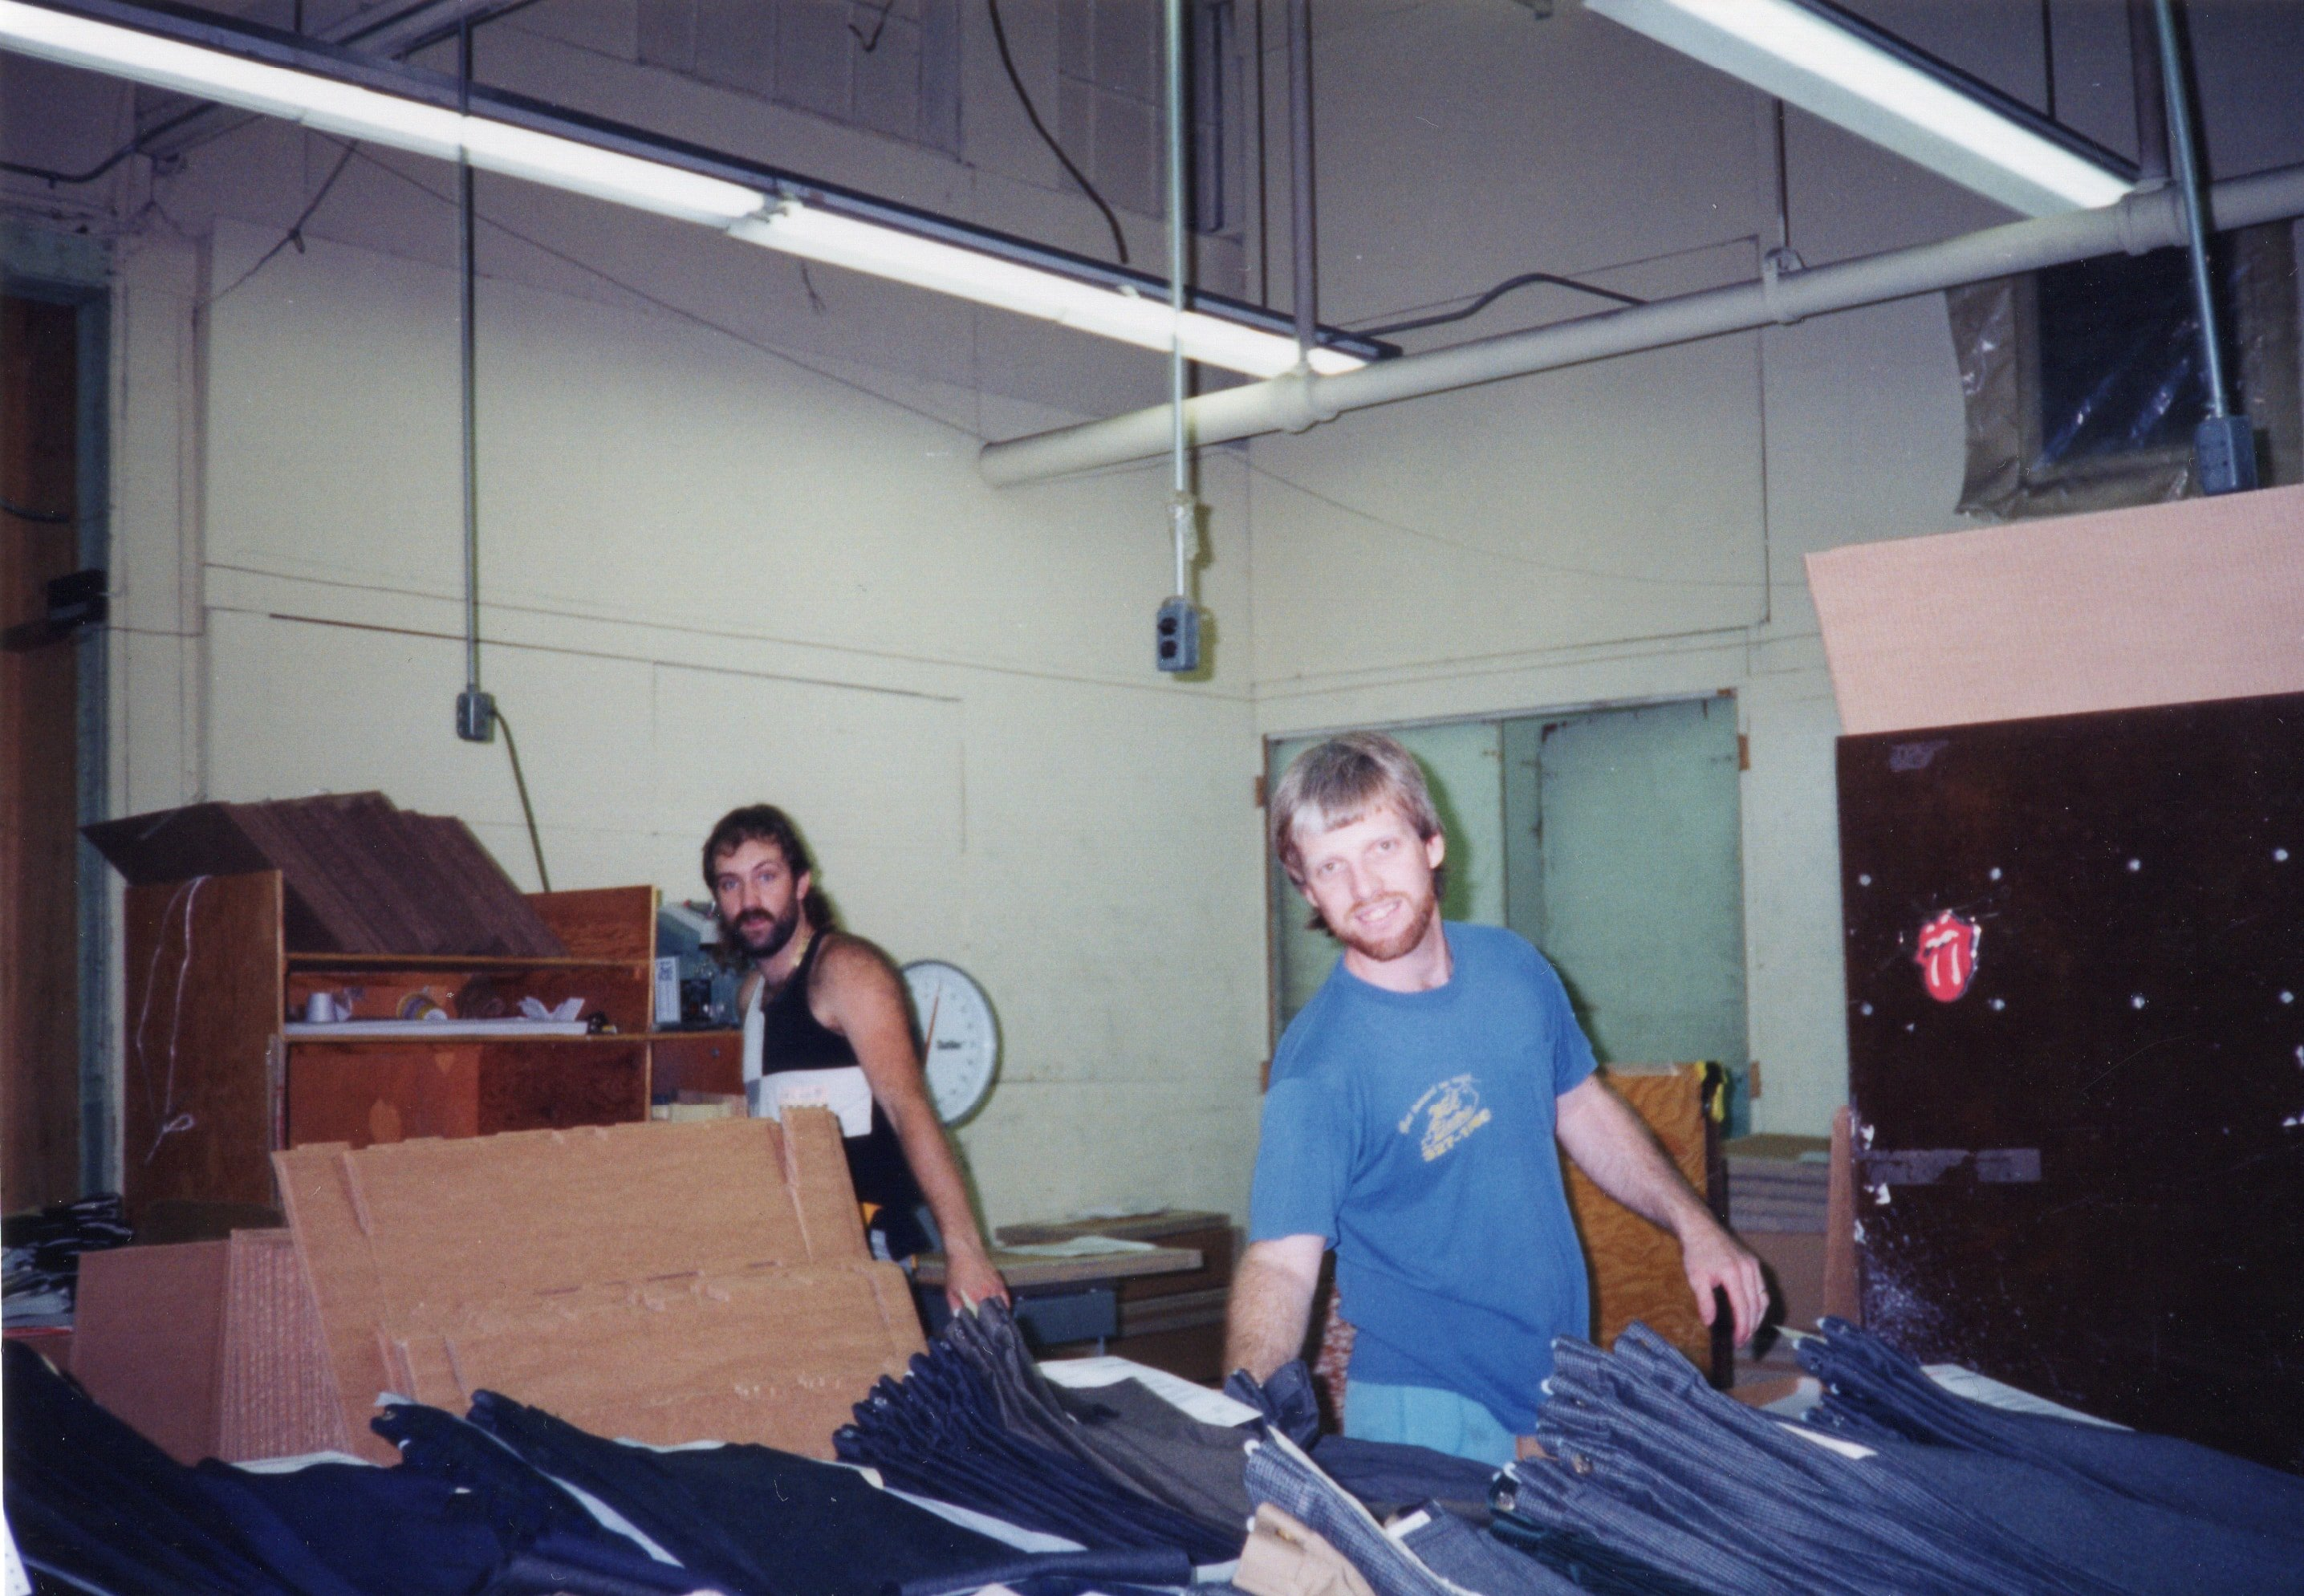 Corbin Ltd. Shipping Dept. Employee Chris Ferguson and Unidentified Employee, Huntington, WV